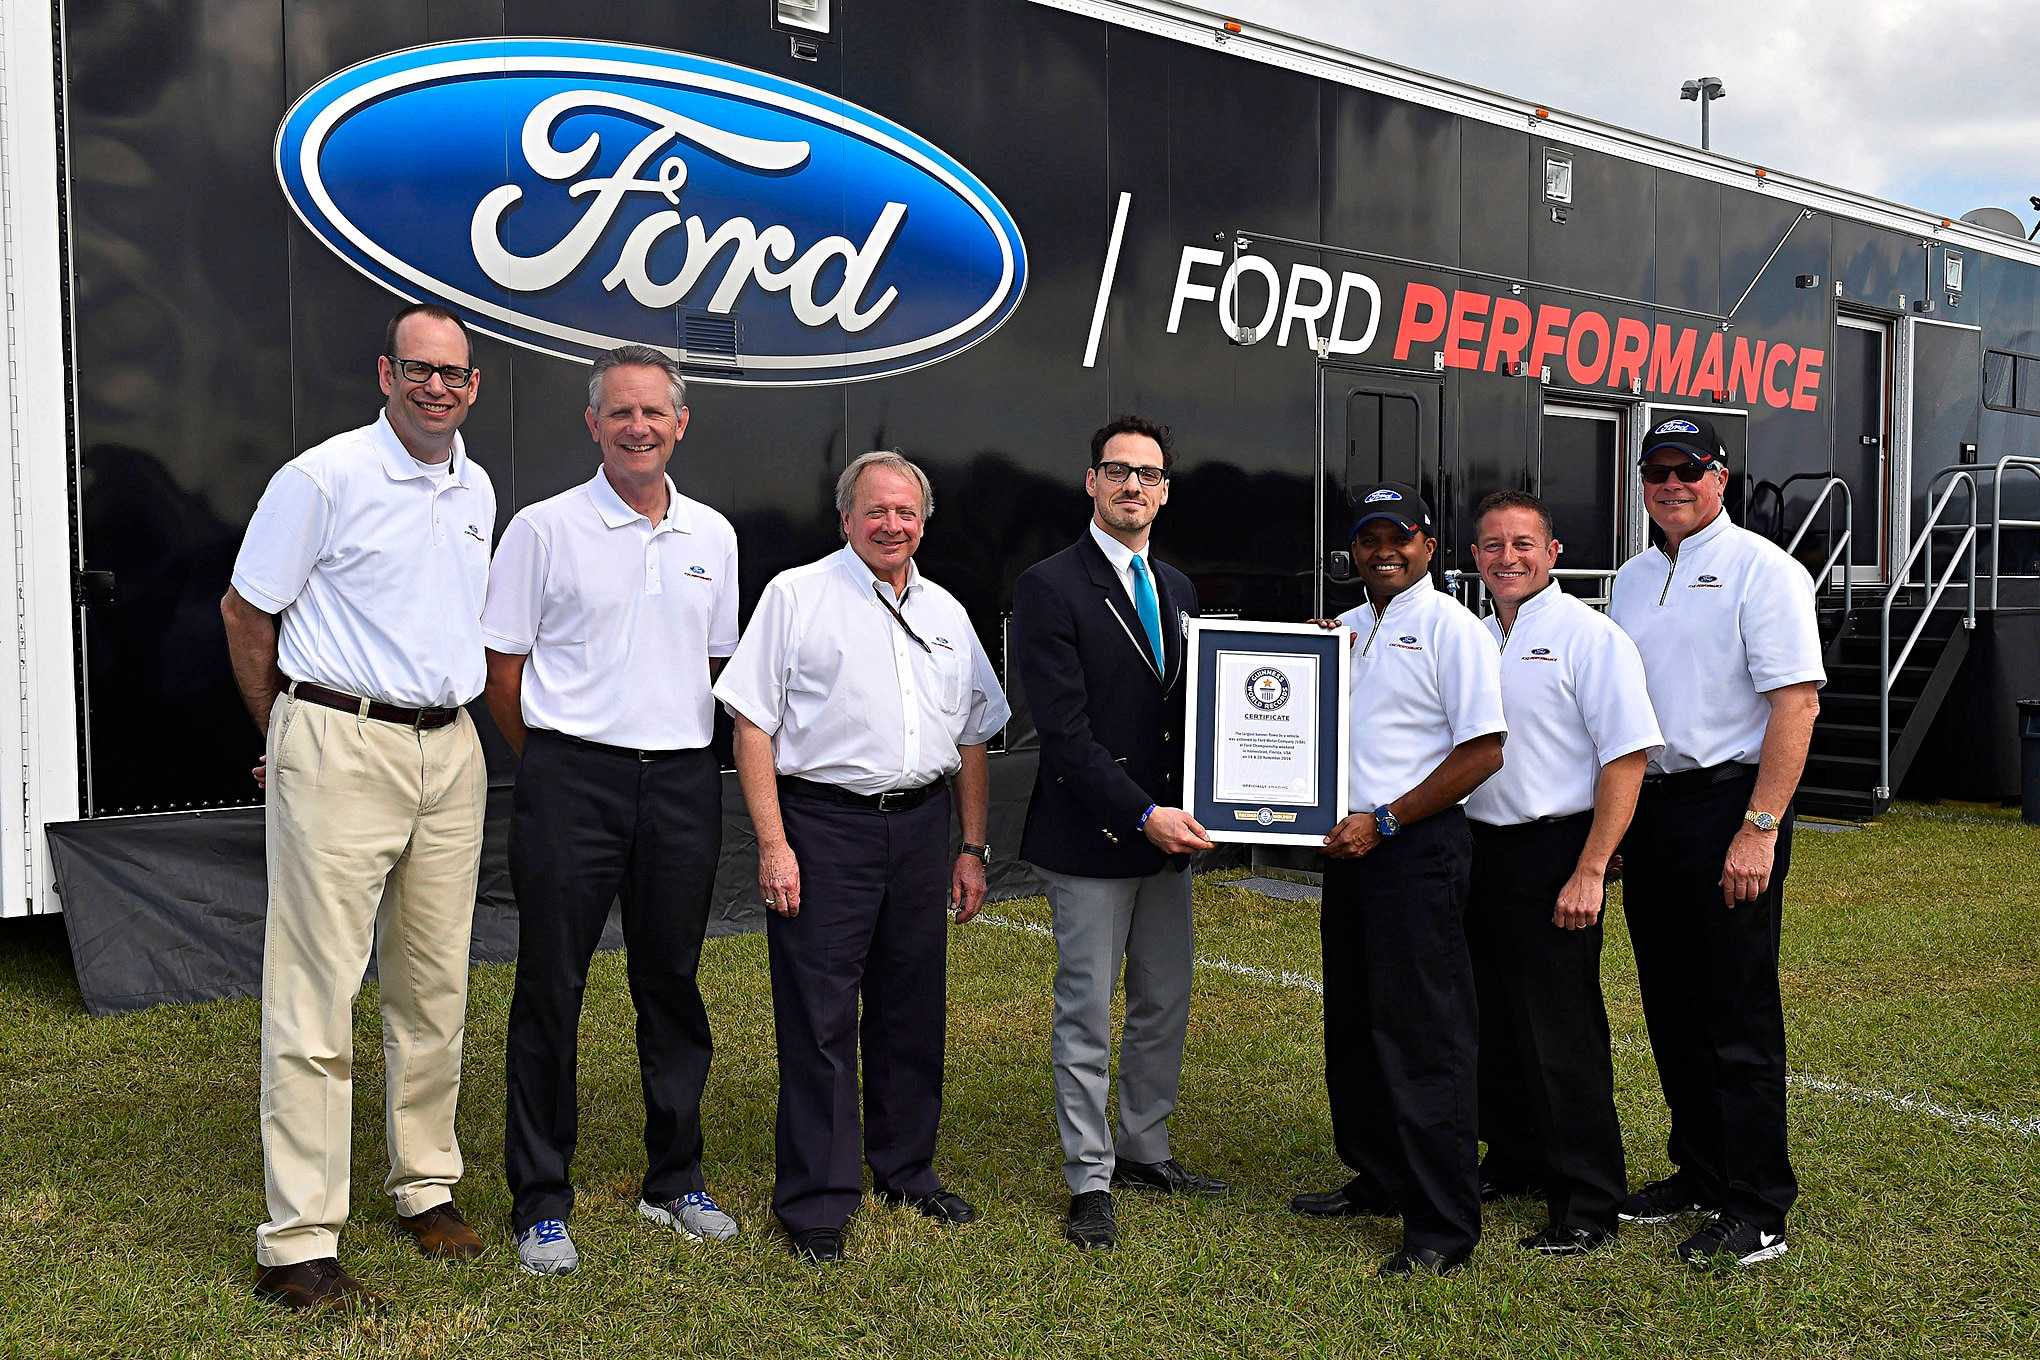 Ford F 450 Guinness Record Flag Pull Award